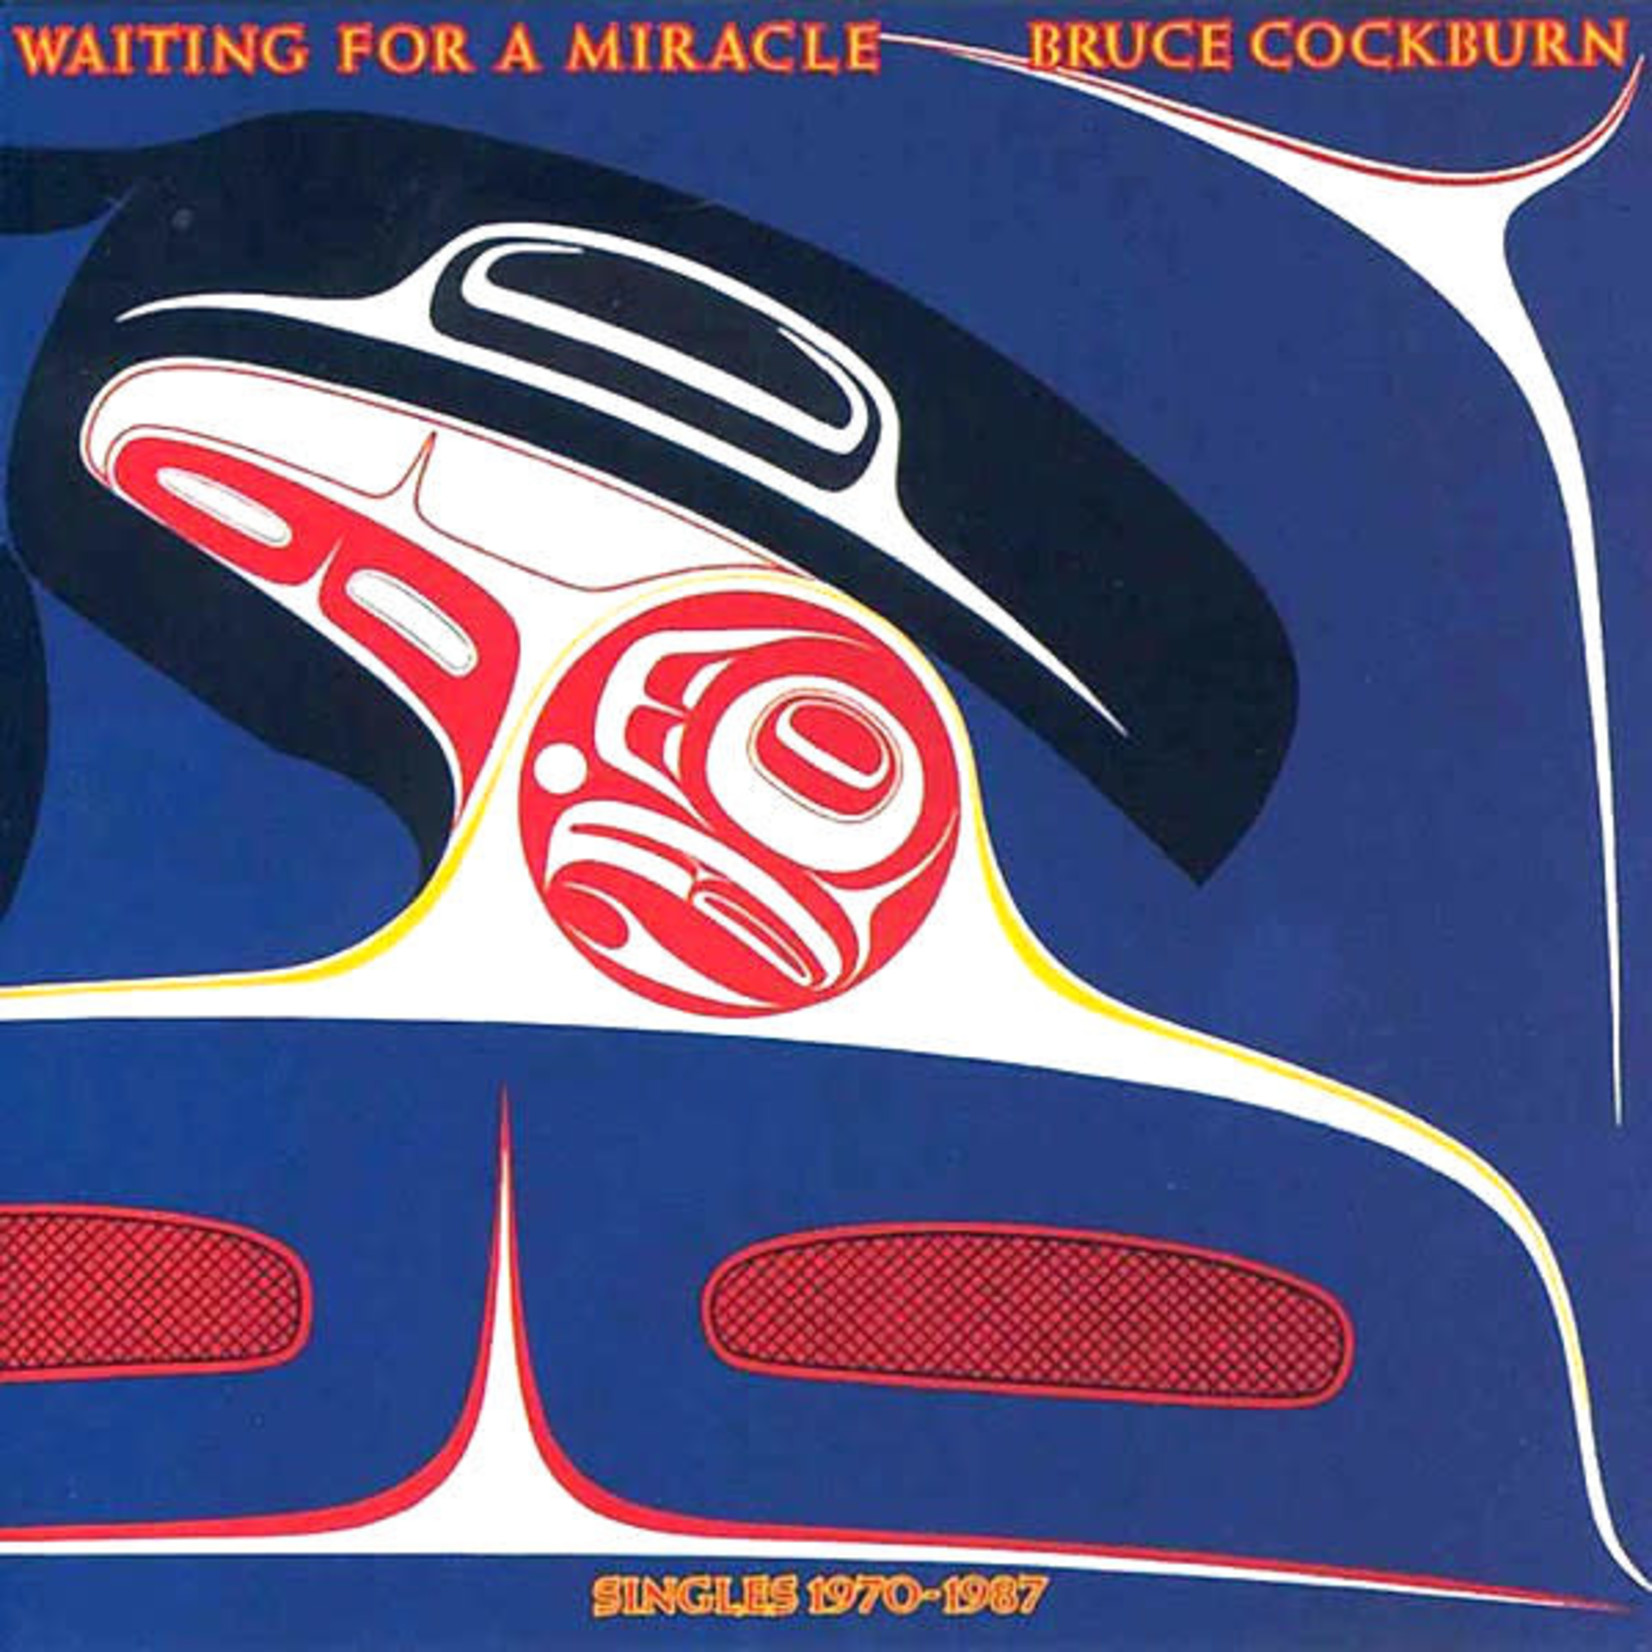 [Vintage] Cockburn, Bruce: Waiting for a Miracle